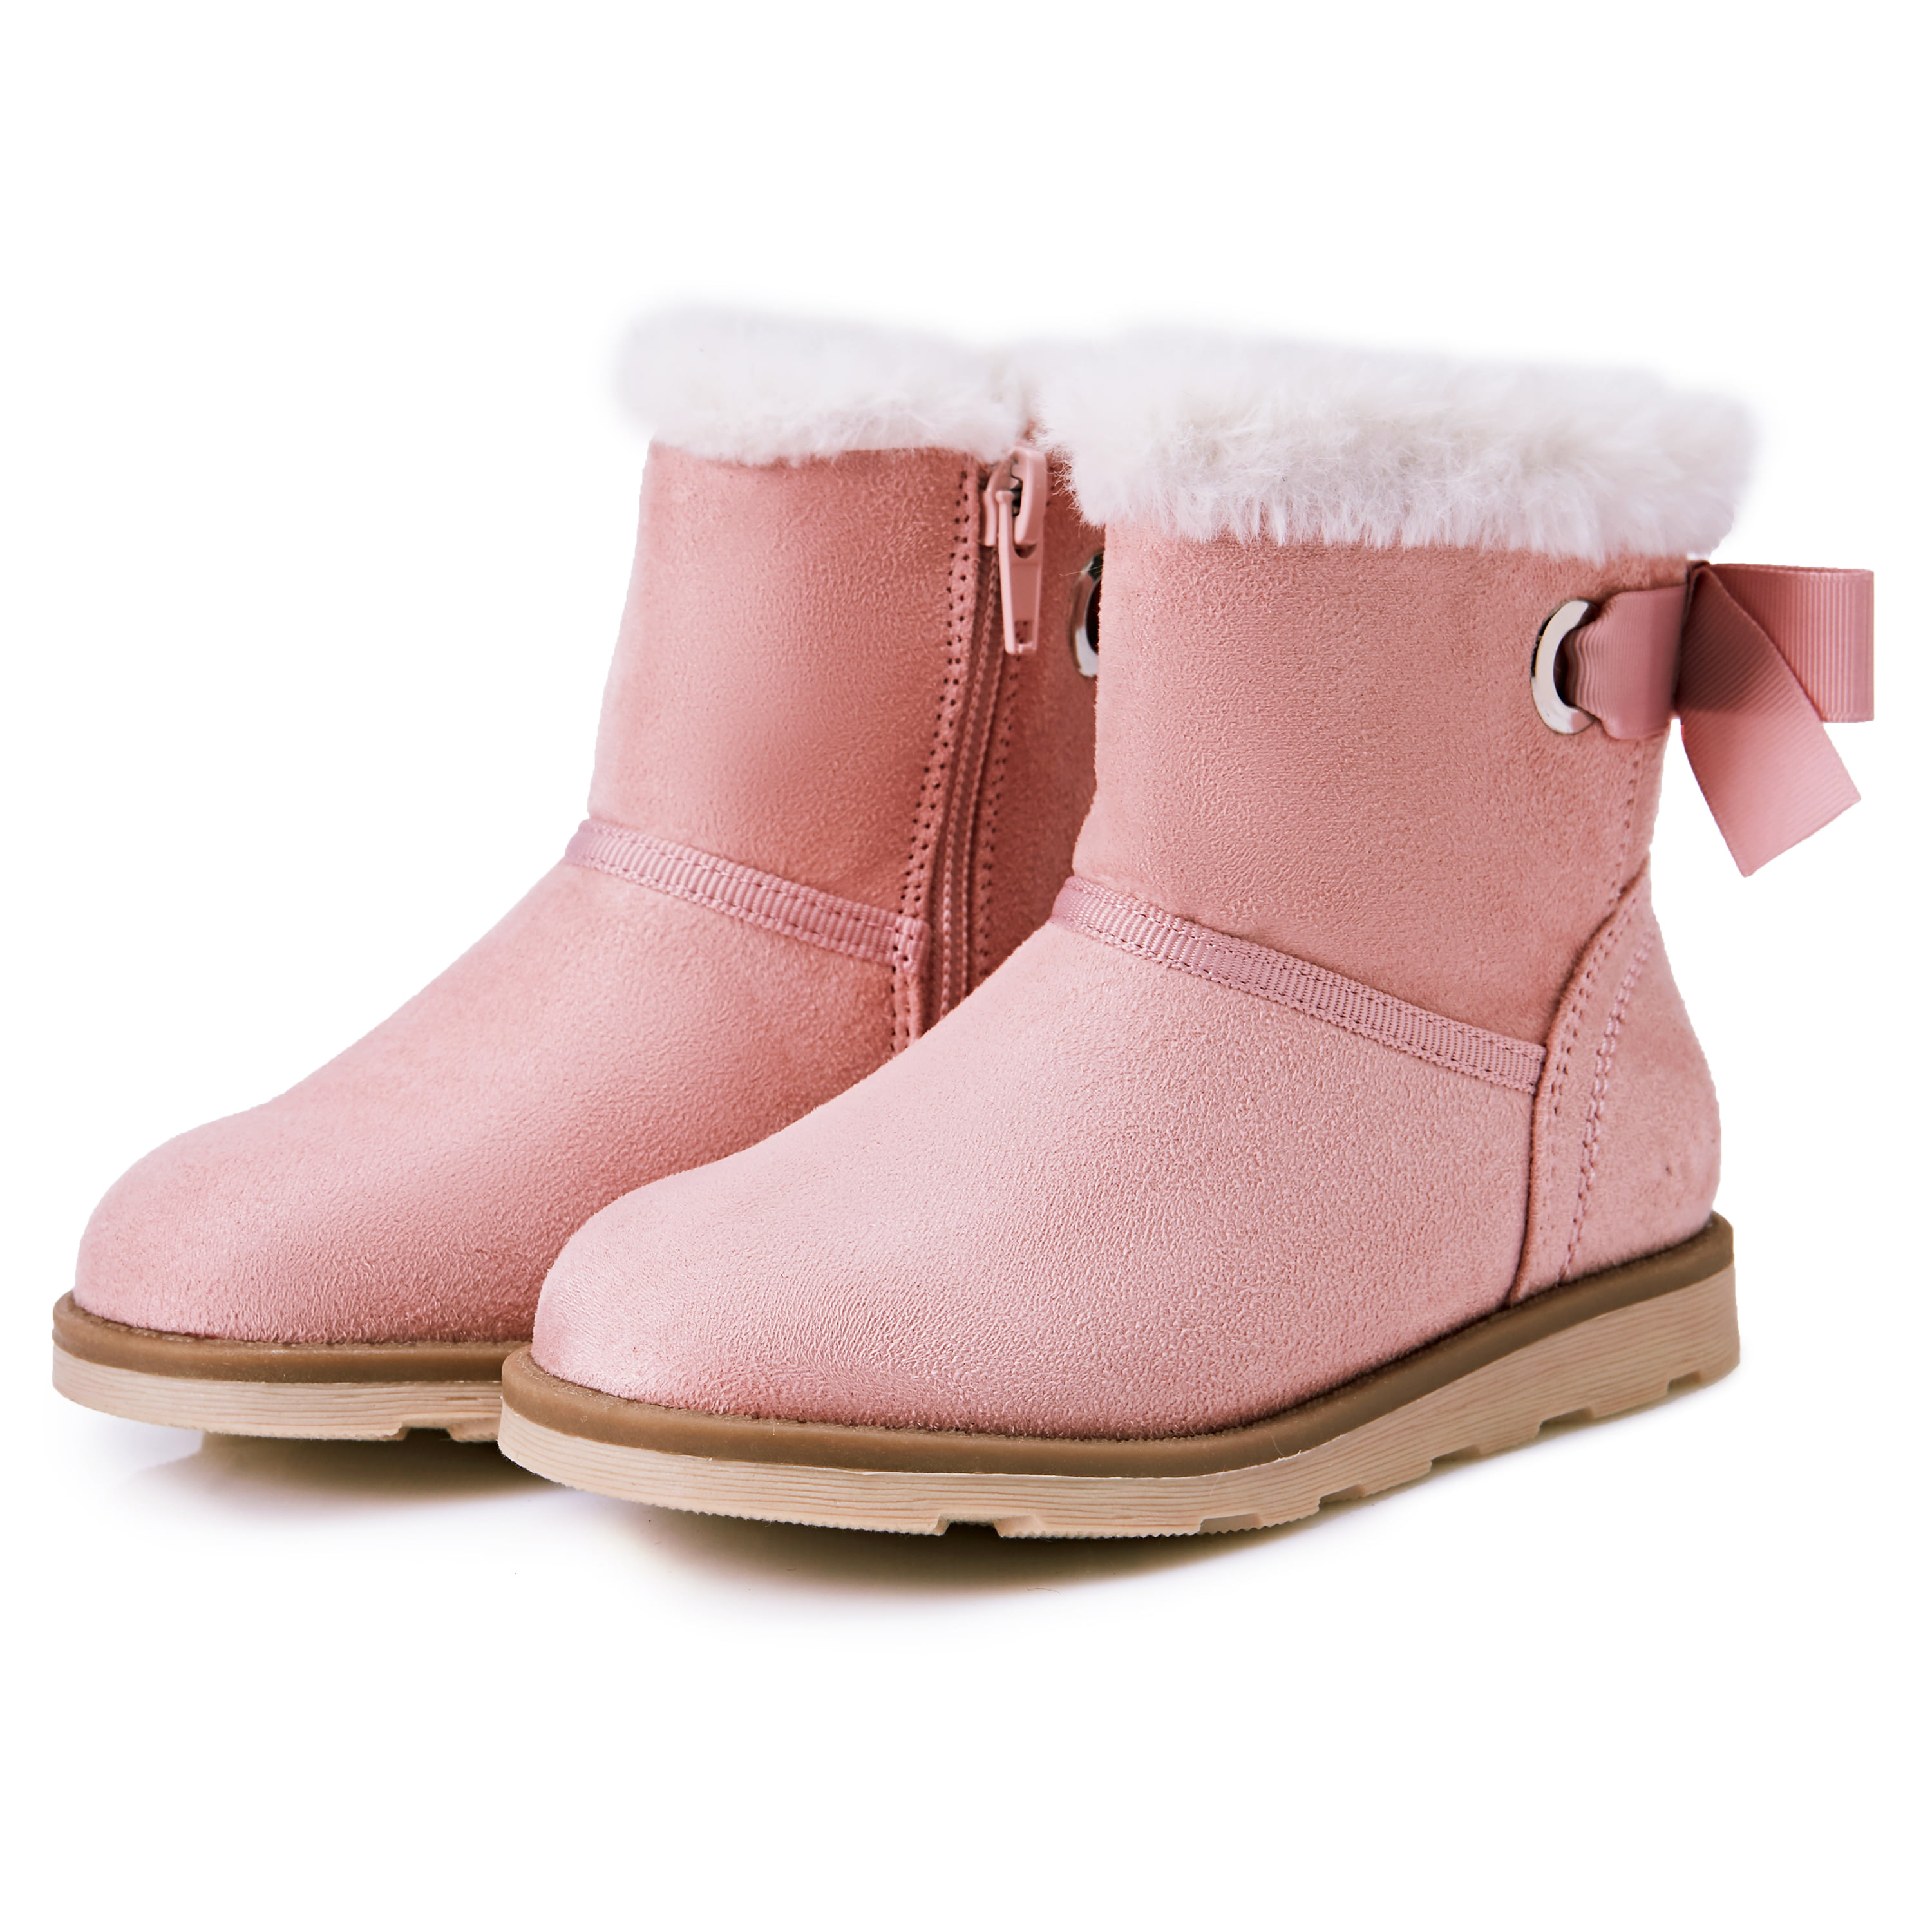 Kids Girls Boys Side Zipper Flat Ankle Boots School Breathable Boot Shoes Size